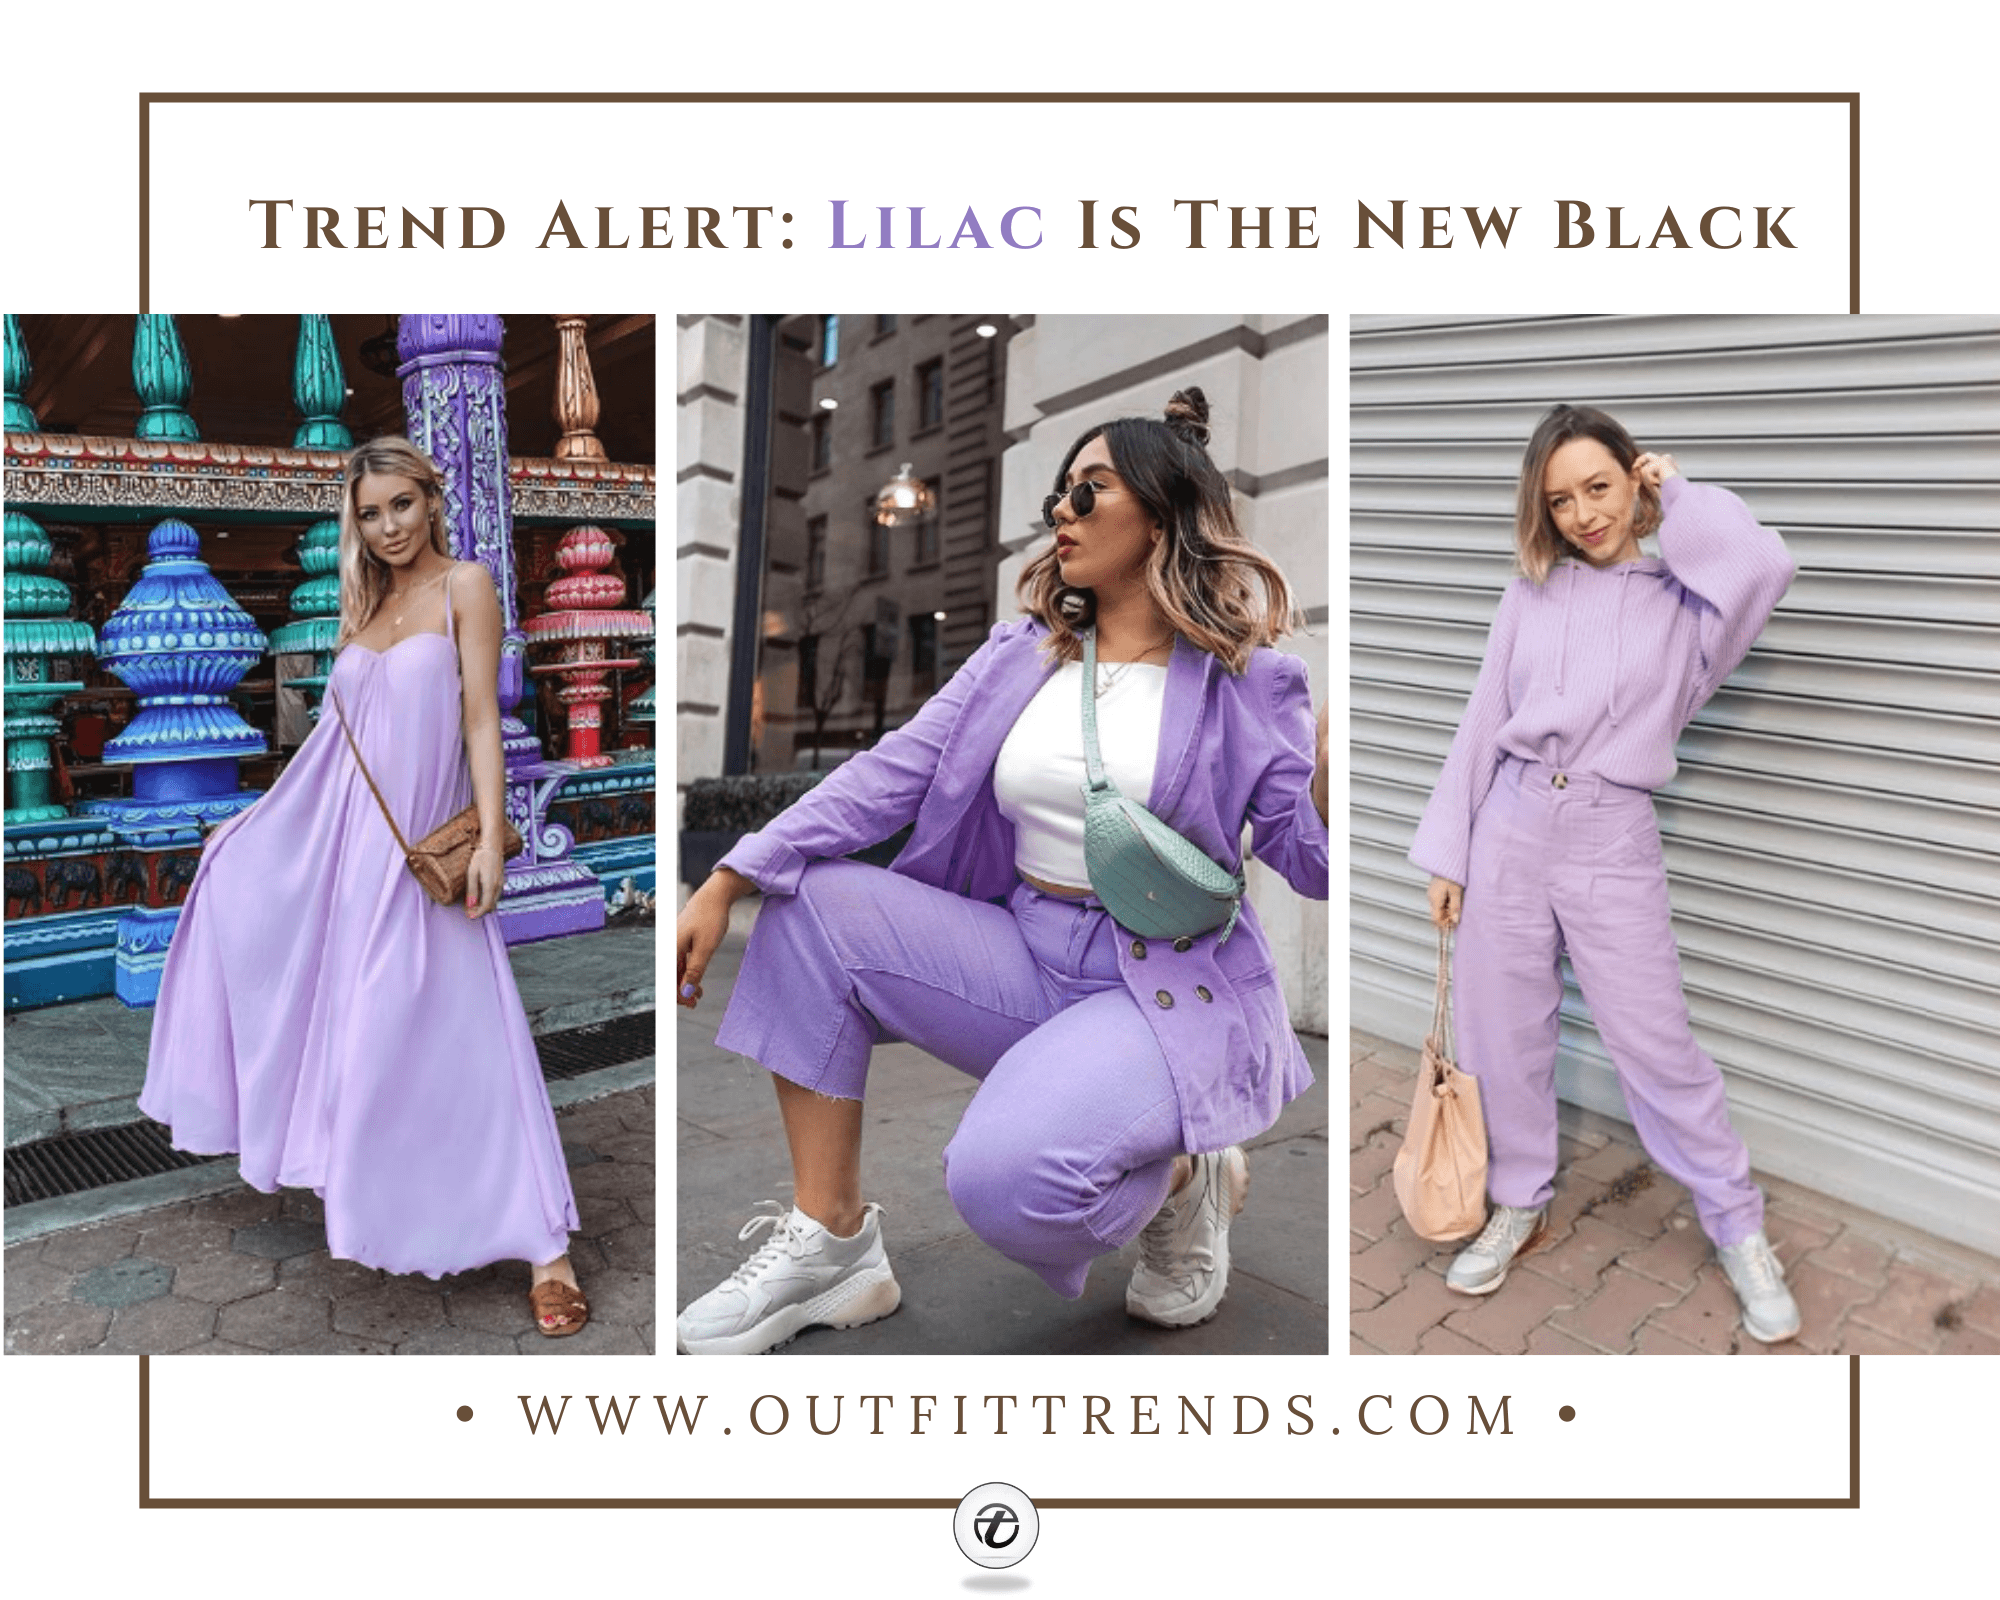 Lilac Clothing 40 Best Ways to Wear Lilac Outfits For Women